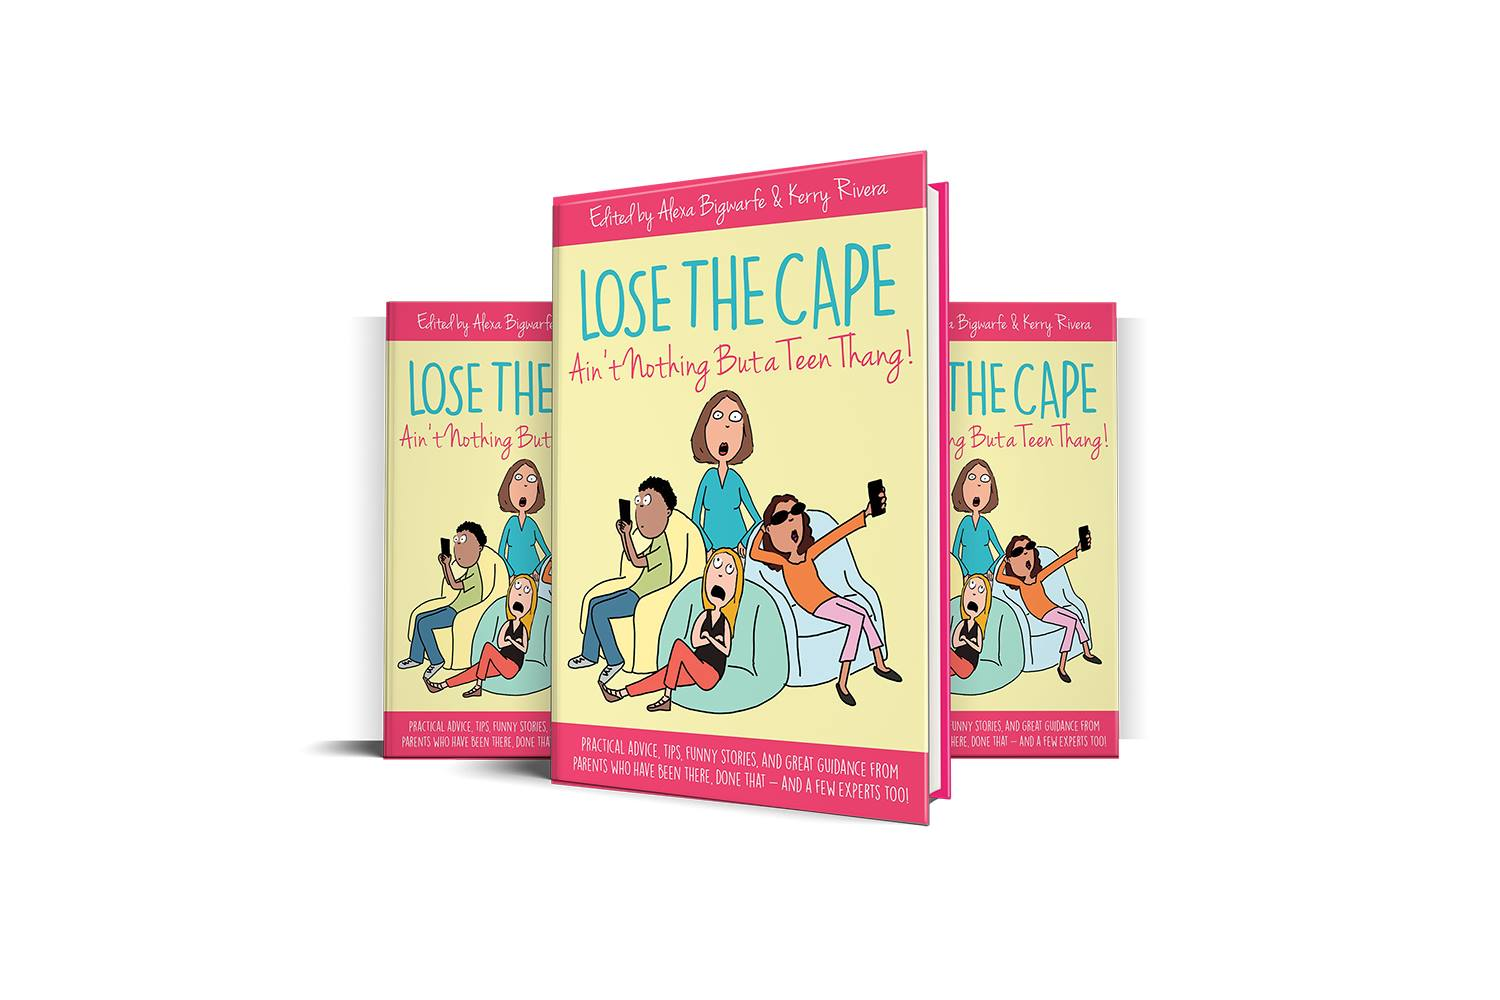 A book about raising teens, Helpful advice and guide to raising teenagers! #book #teens #parenting